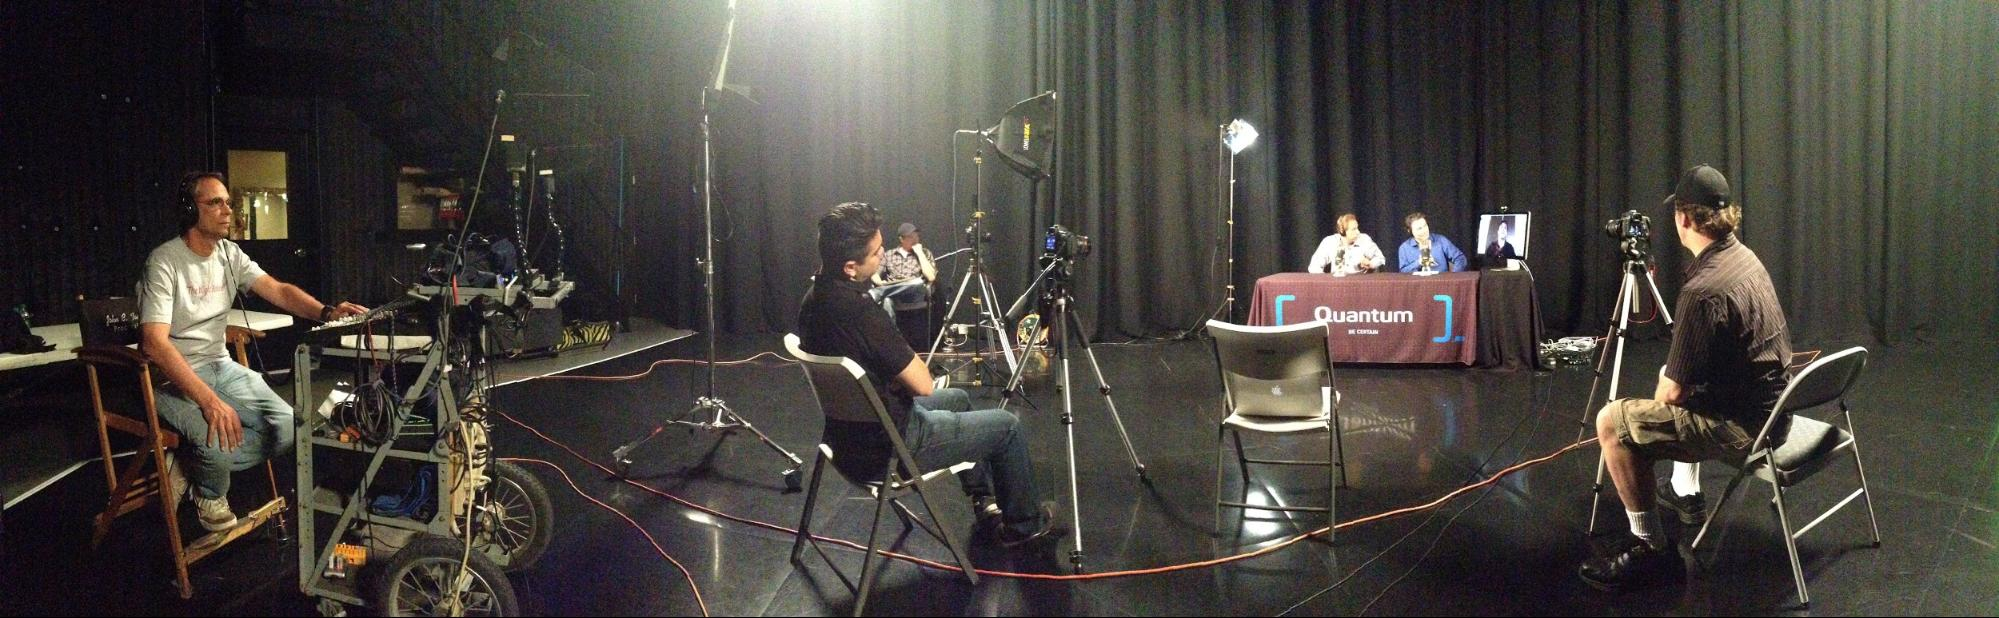 Industrious Films Shooting a Video for Quantum